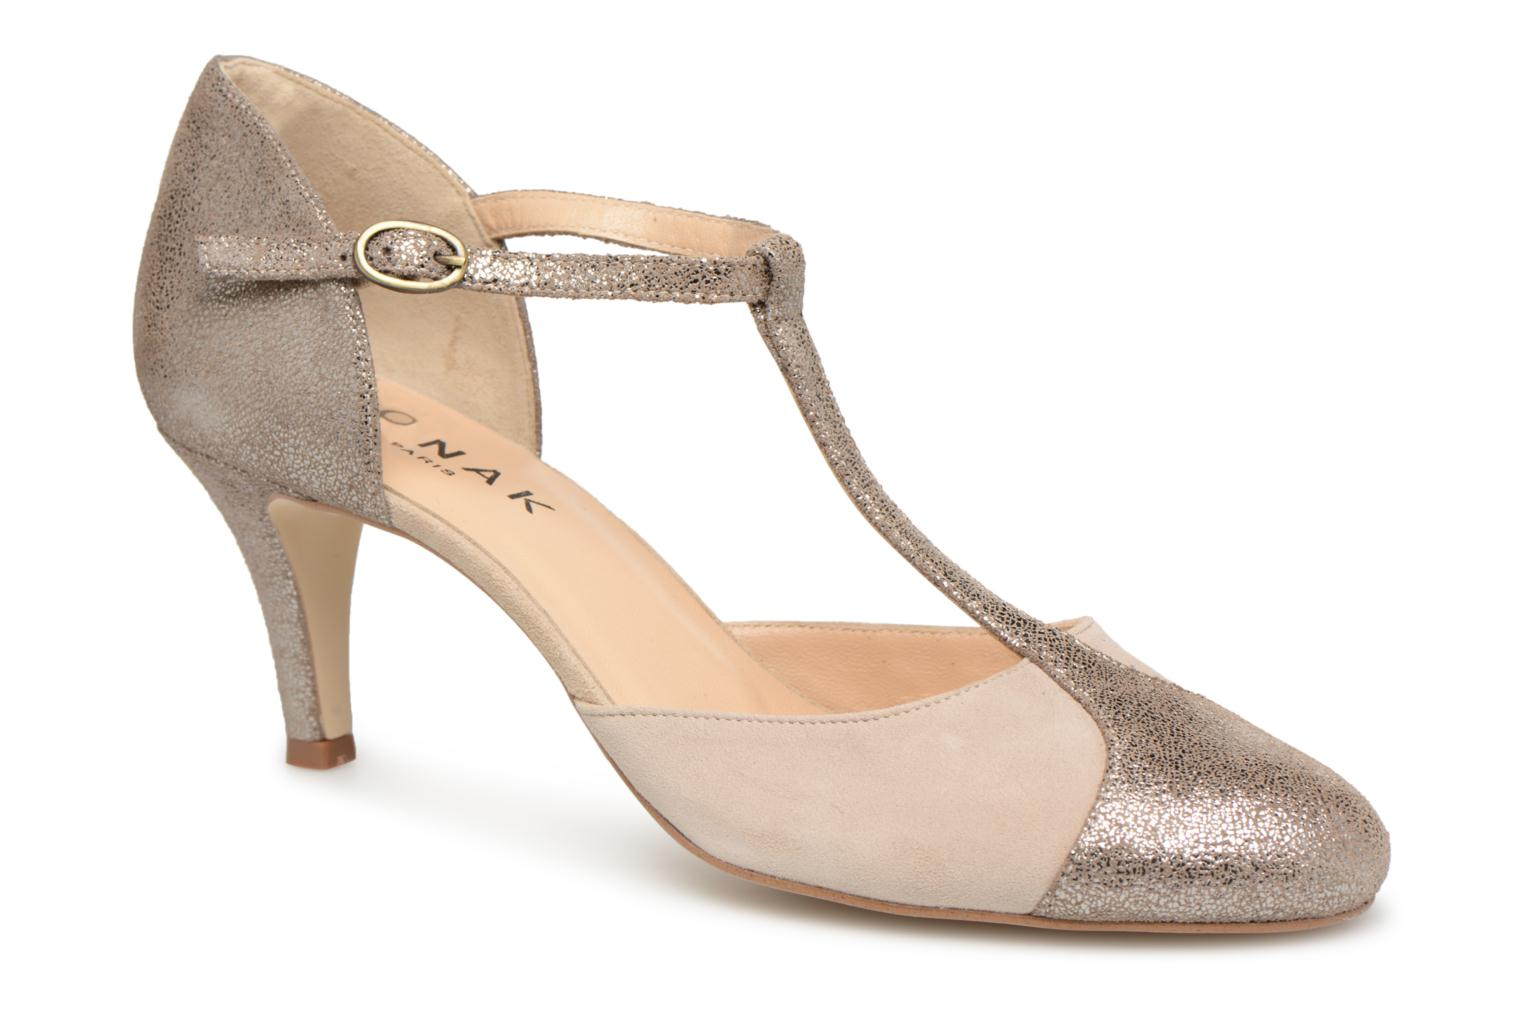 Marques Chaussure femme Jonak femme 8810714 Taupe